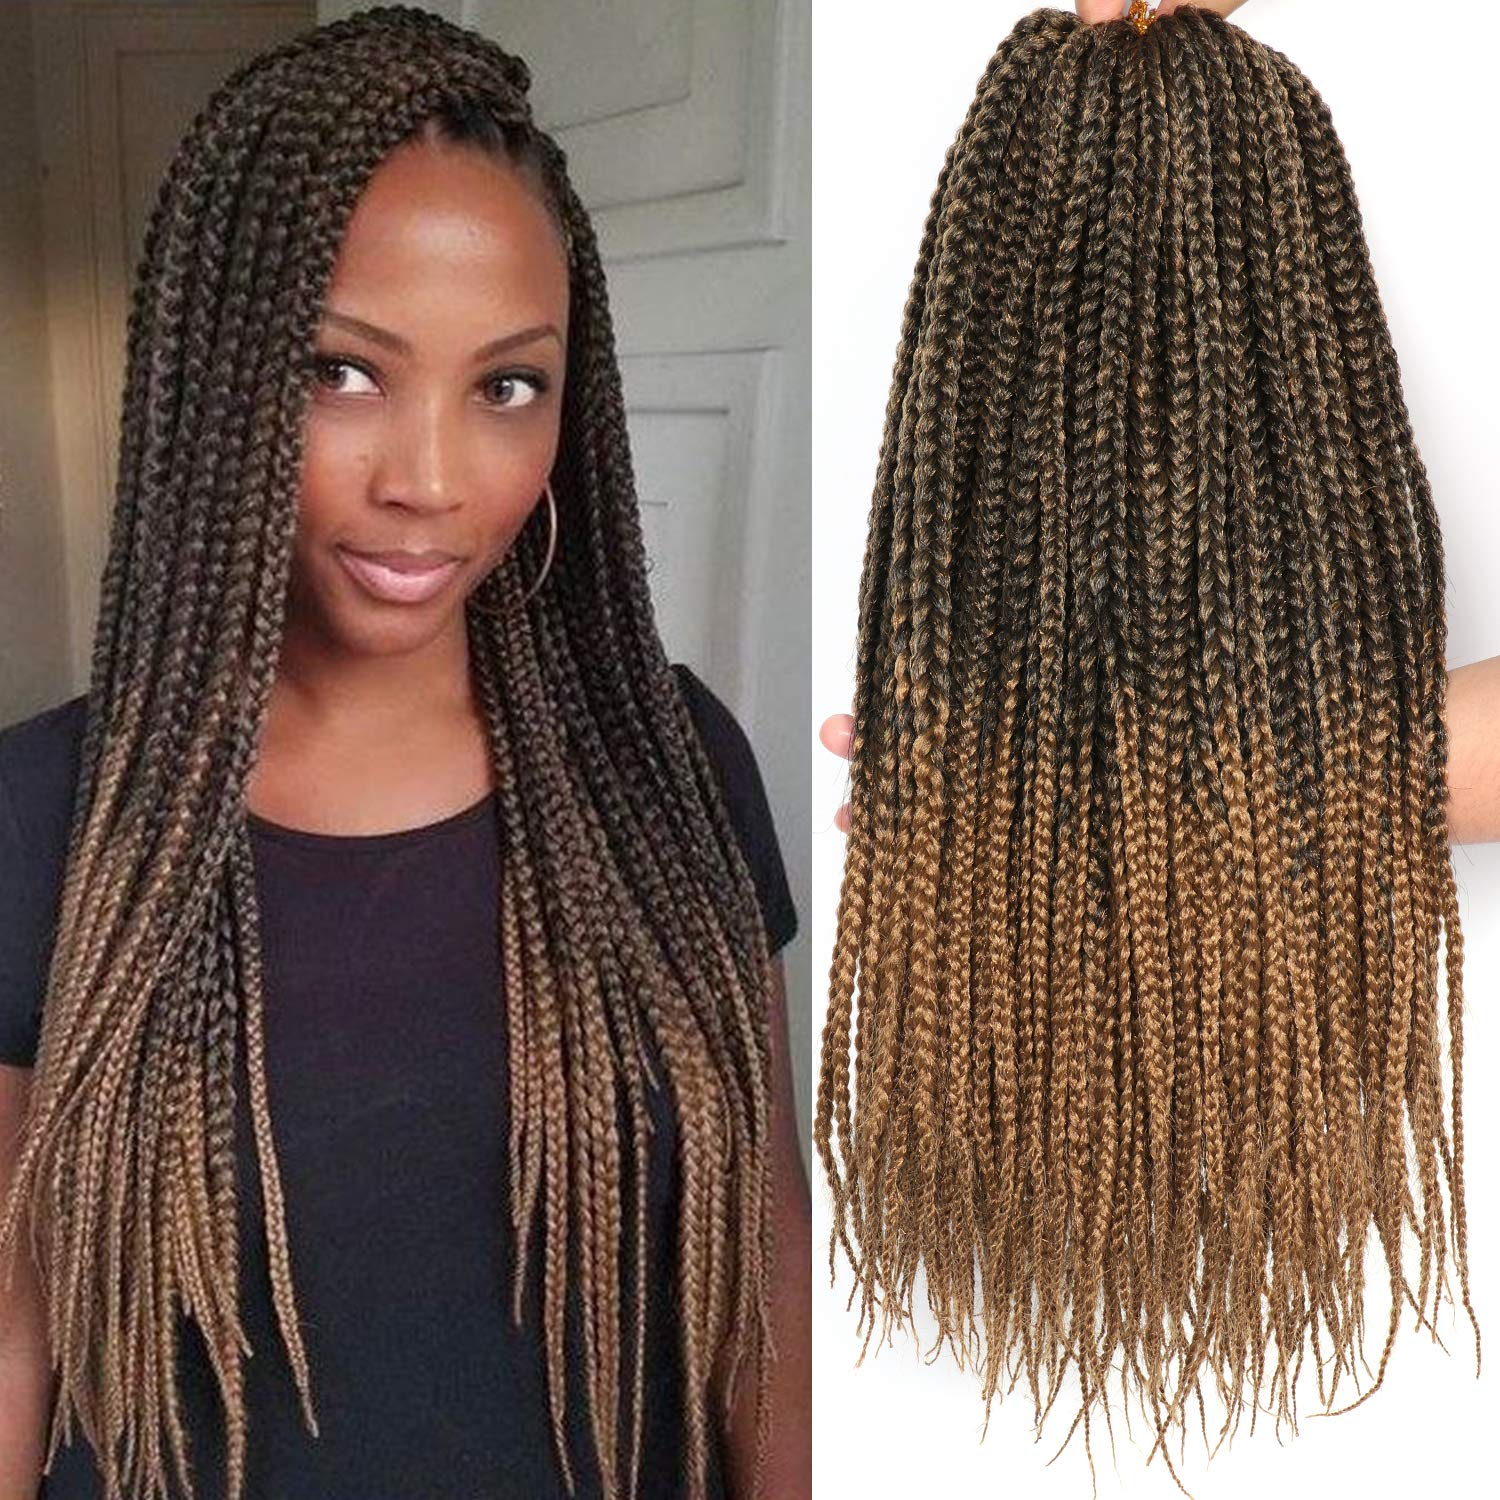 7 Packs 18 Inches Medium Box Braids Crochet Braids Hair 20 Strands Pack Synthetic Braiding Hair Extensions 18 Inch 1b 27